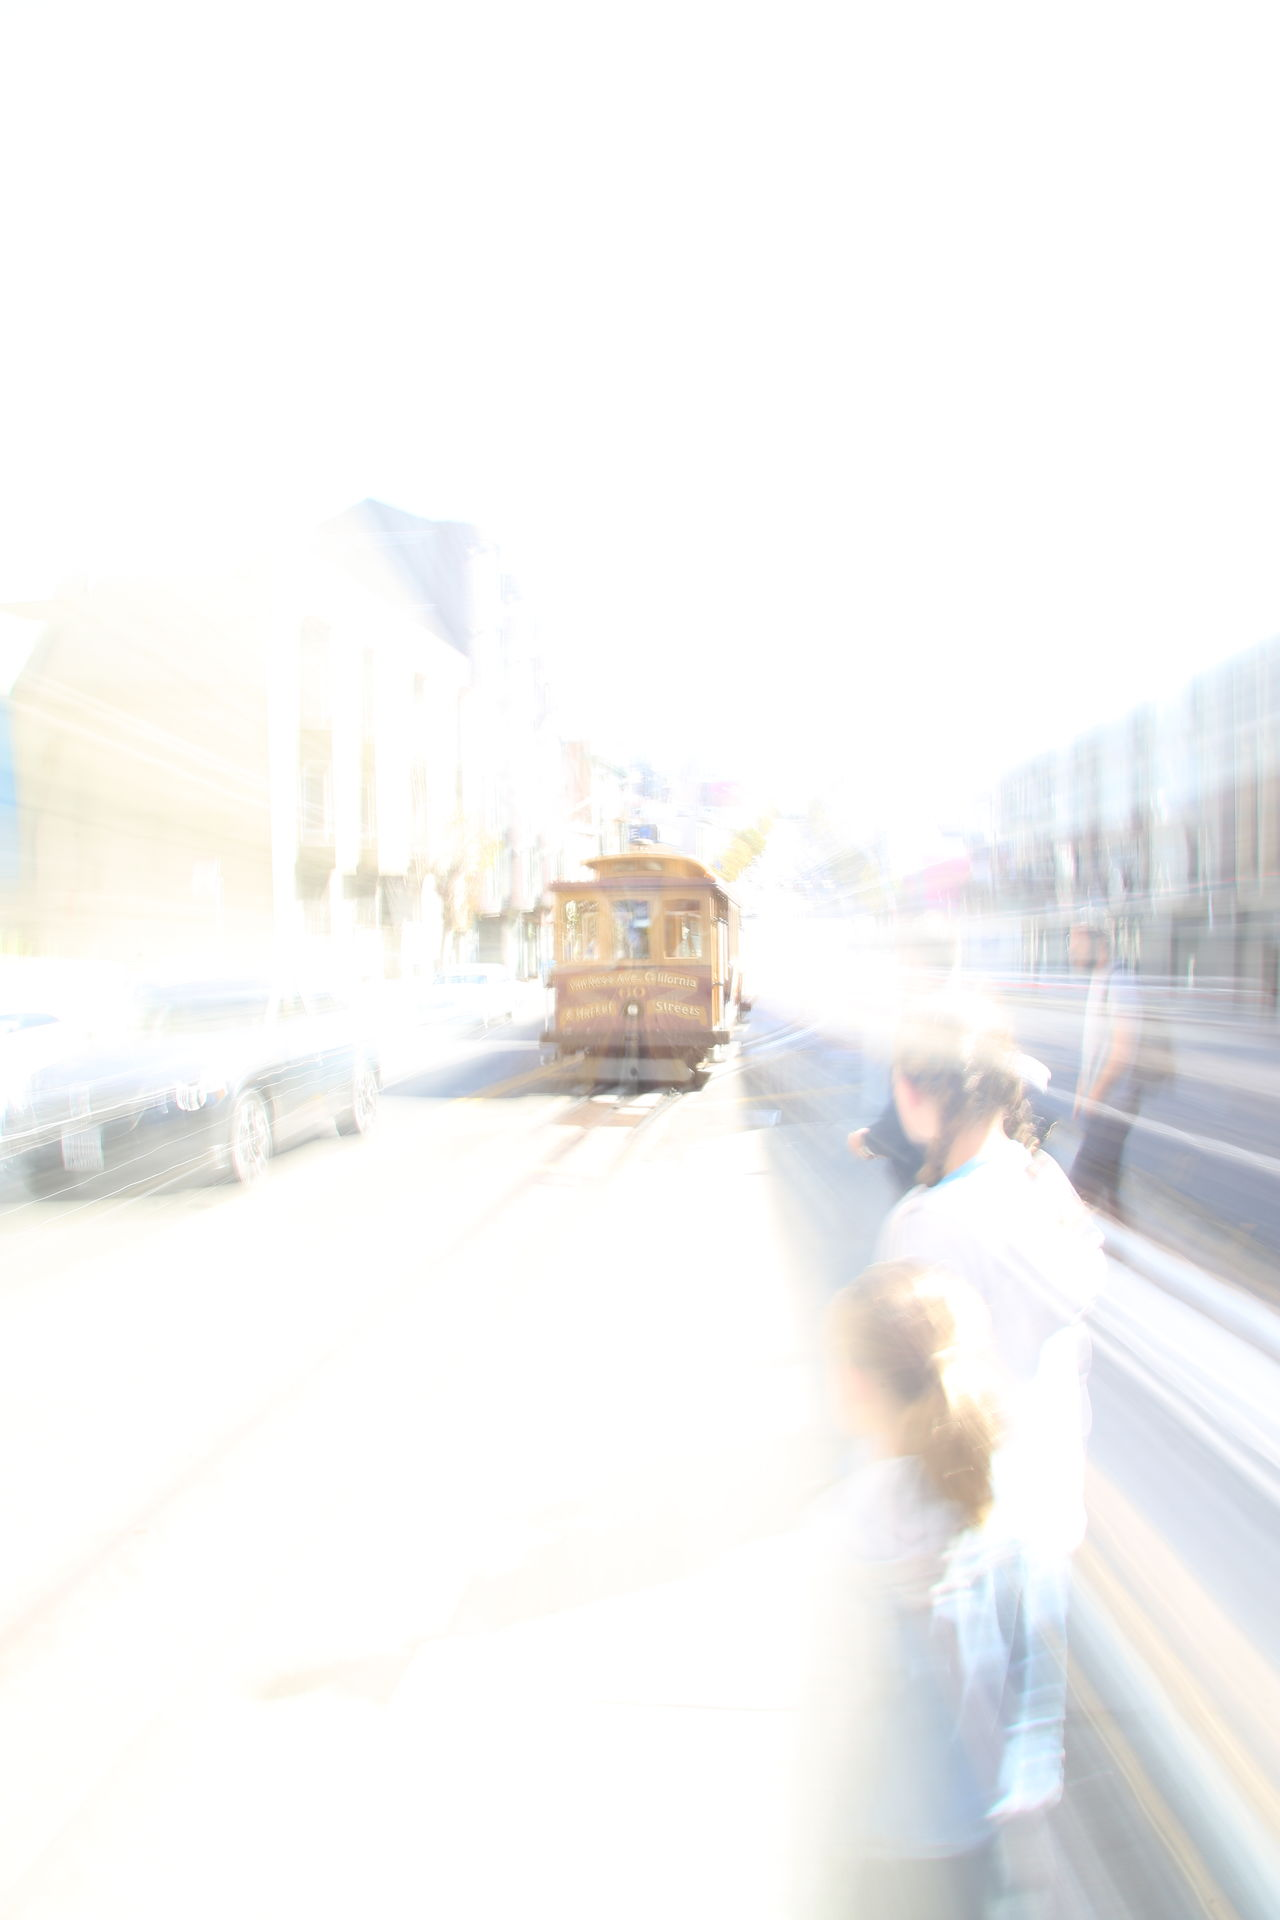 Building Exterior Cable Car City City Life Cityscape Day Lifestyles Moving Outdoors Public Transportation Traffic